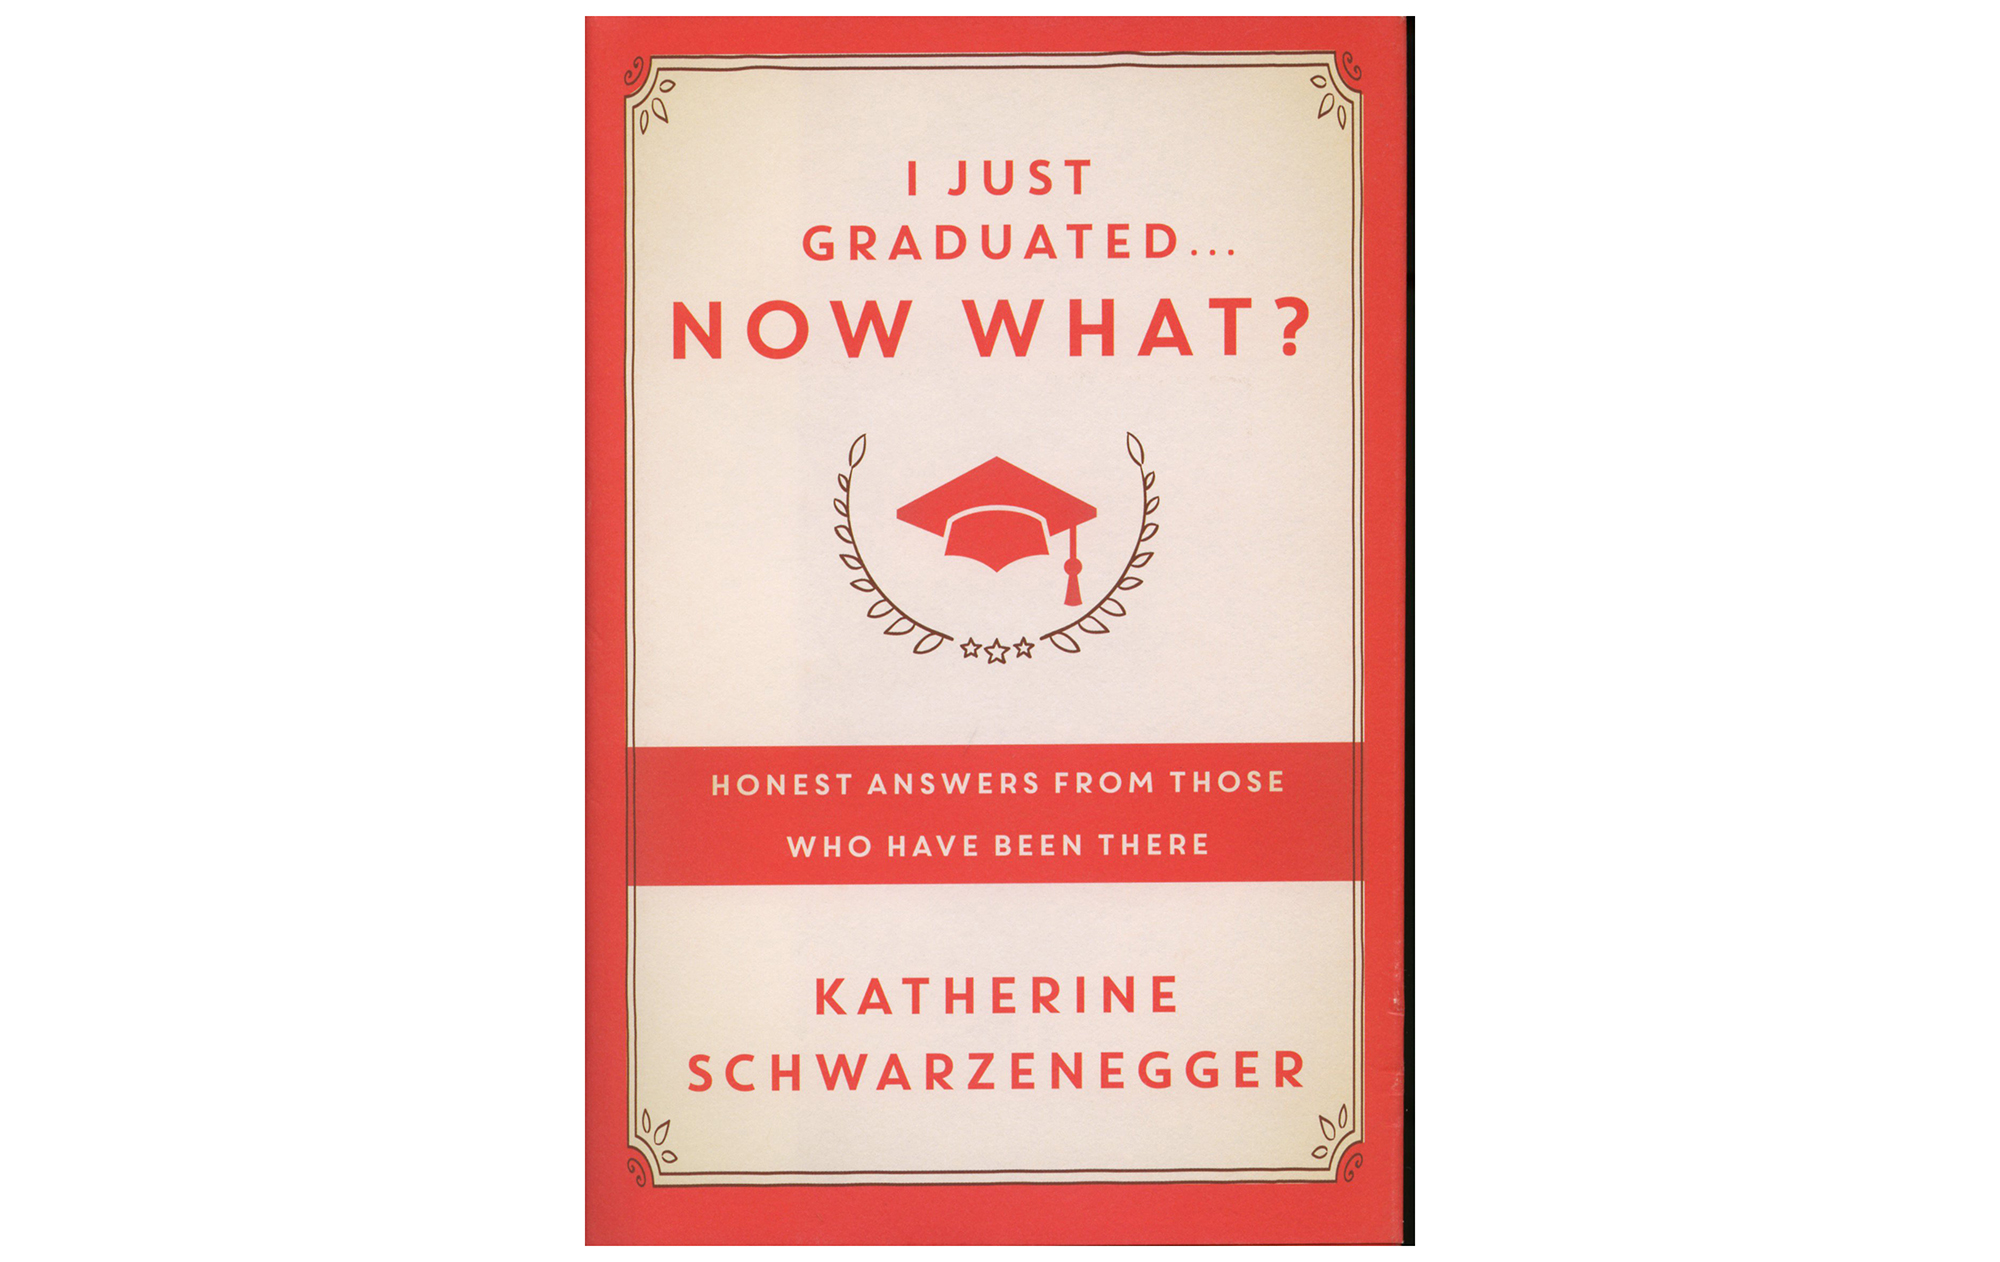 I Just Graduated. . . Now What?, by Katherine Schwarzenegger